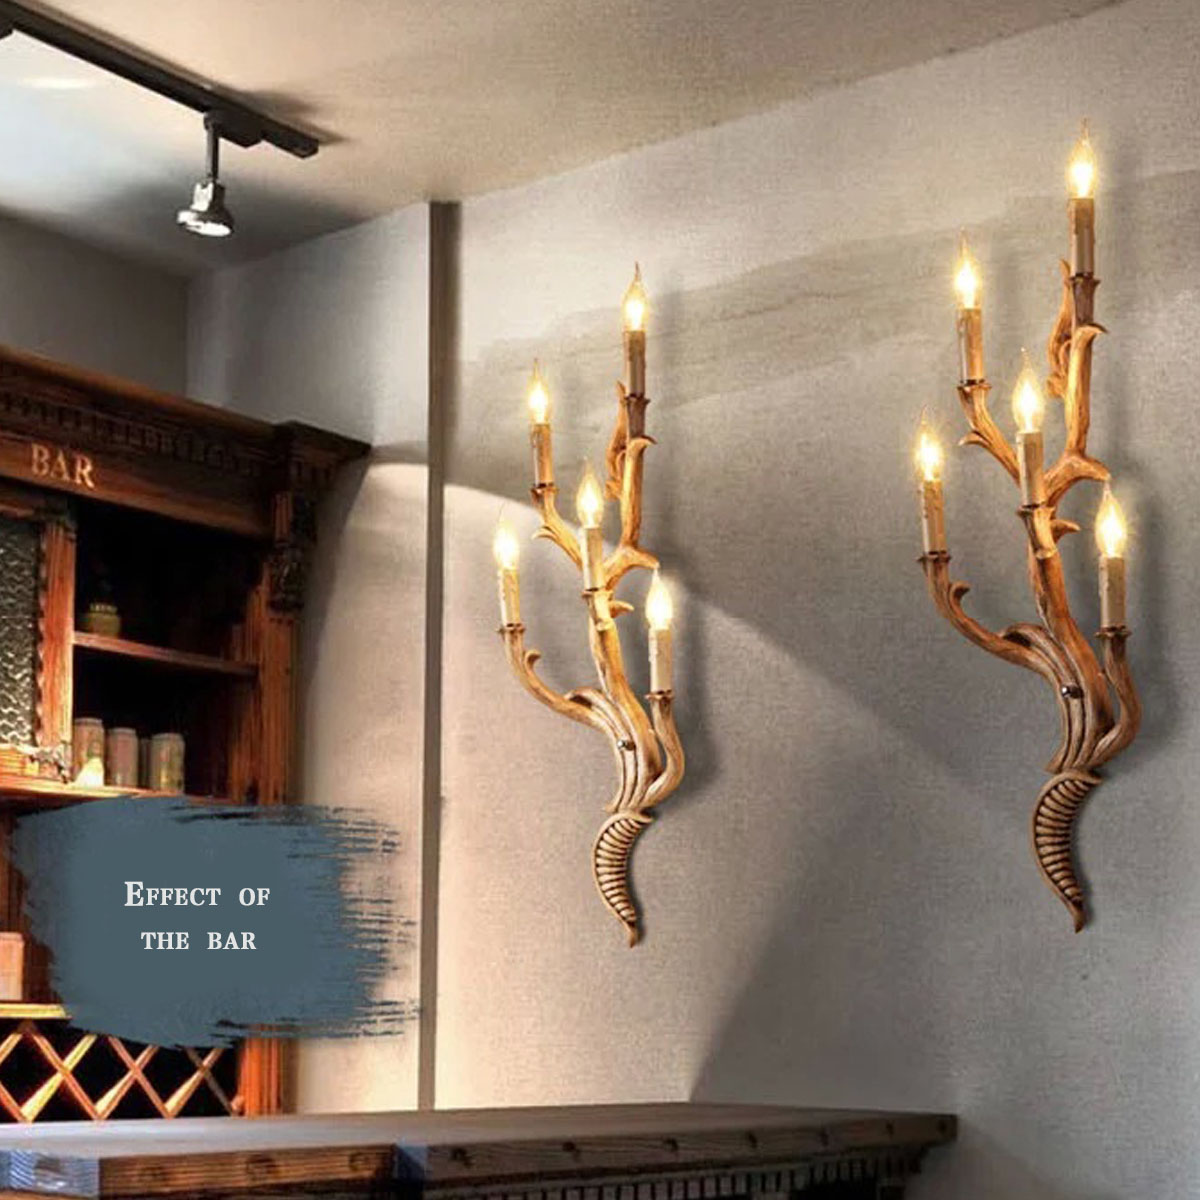 Top grade vintage wall light tree branch shape wall sconces top grade vintage wall light tree branch shape wall sconces american garden wall light dining room wall lamps in wall lamps from lights lighting on amipublicfo Image collections